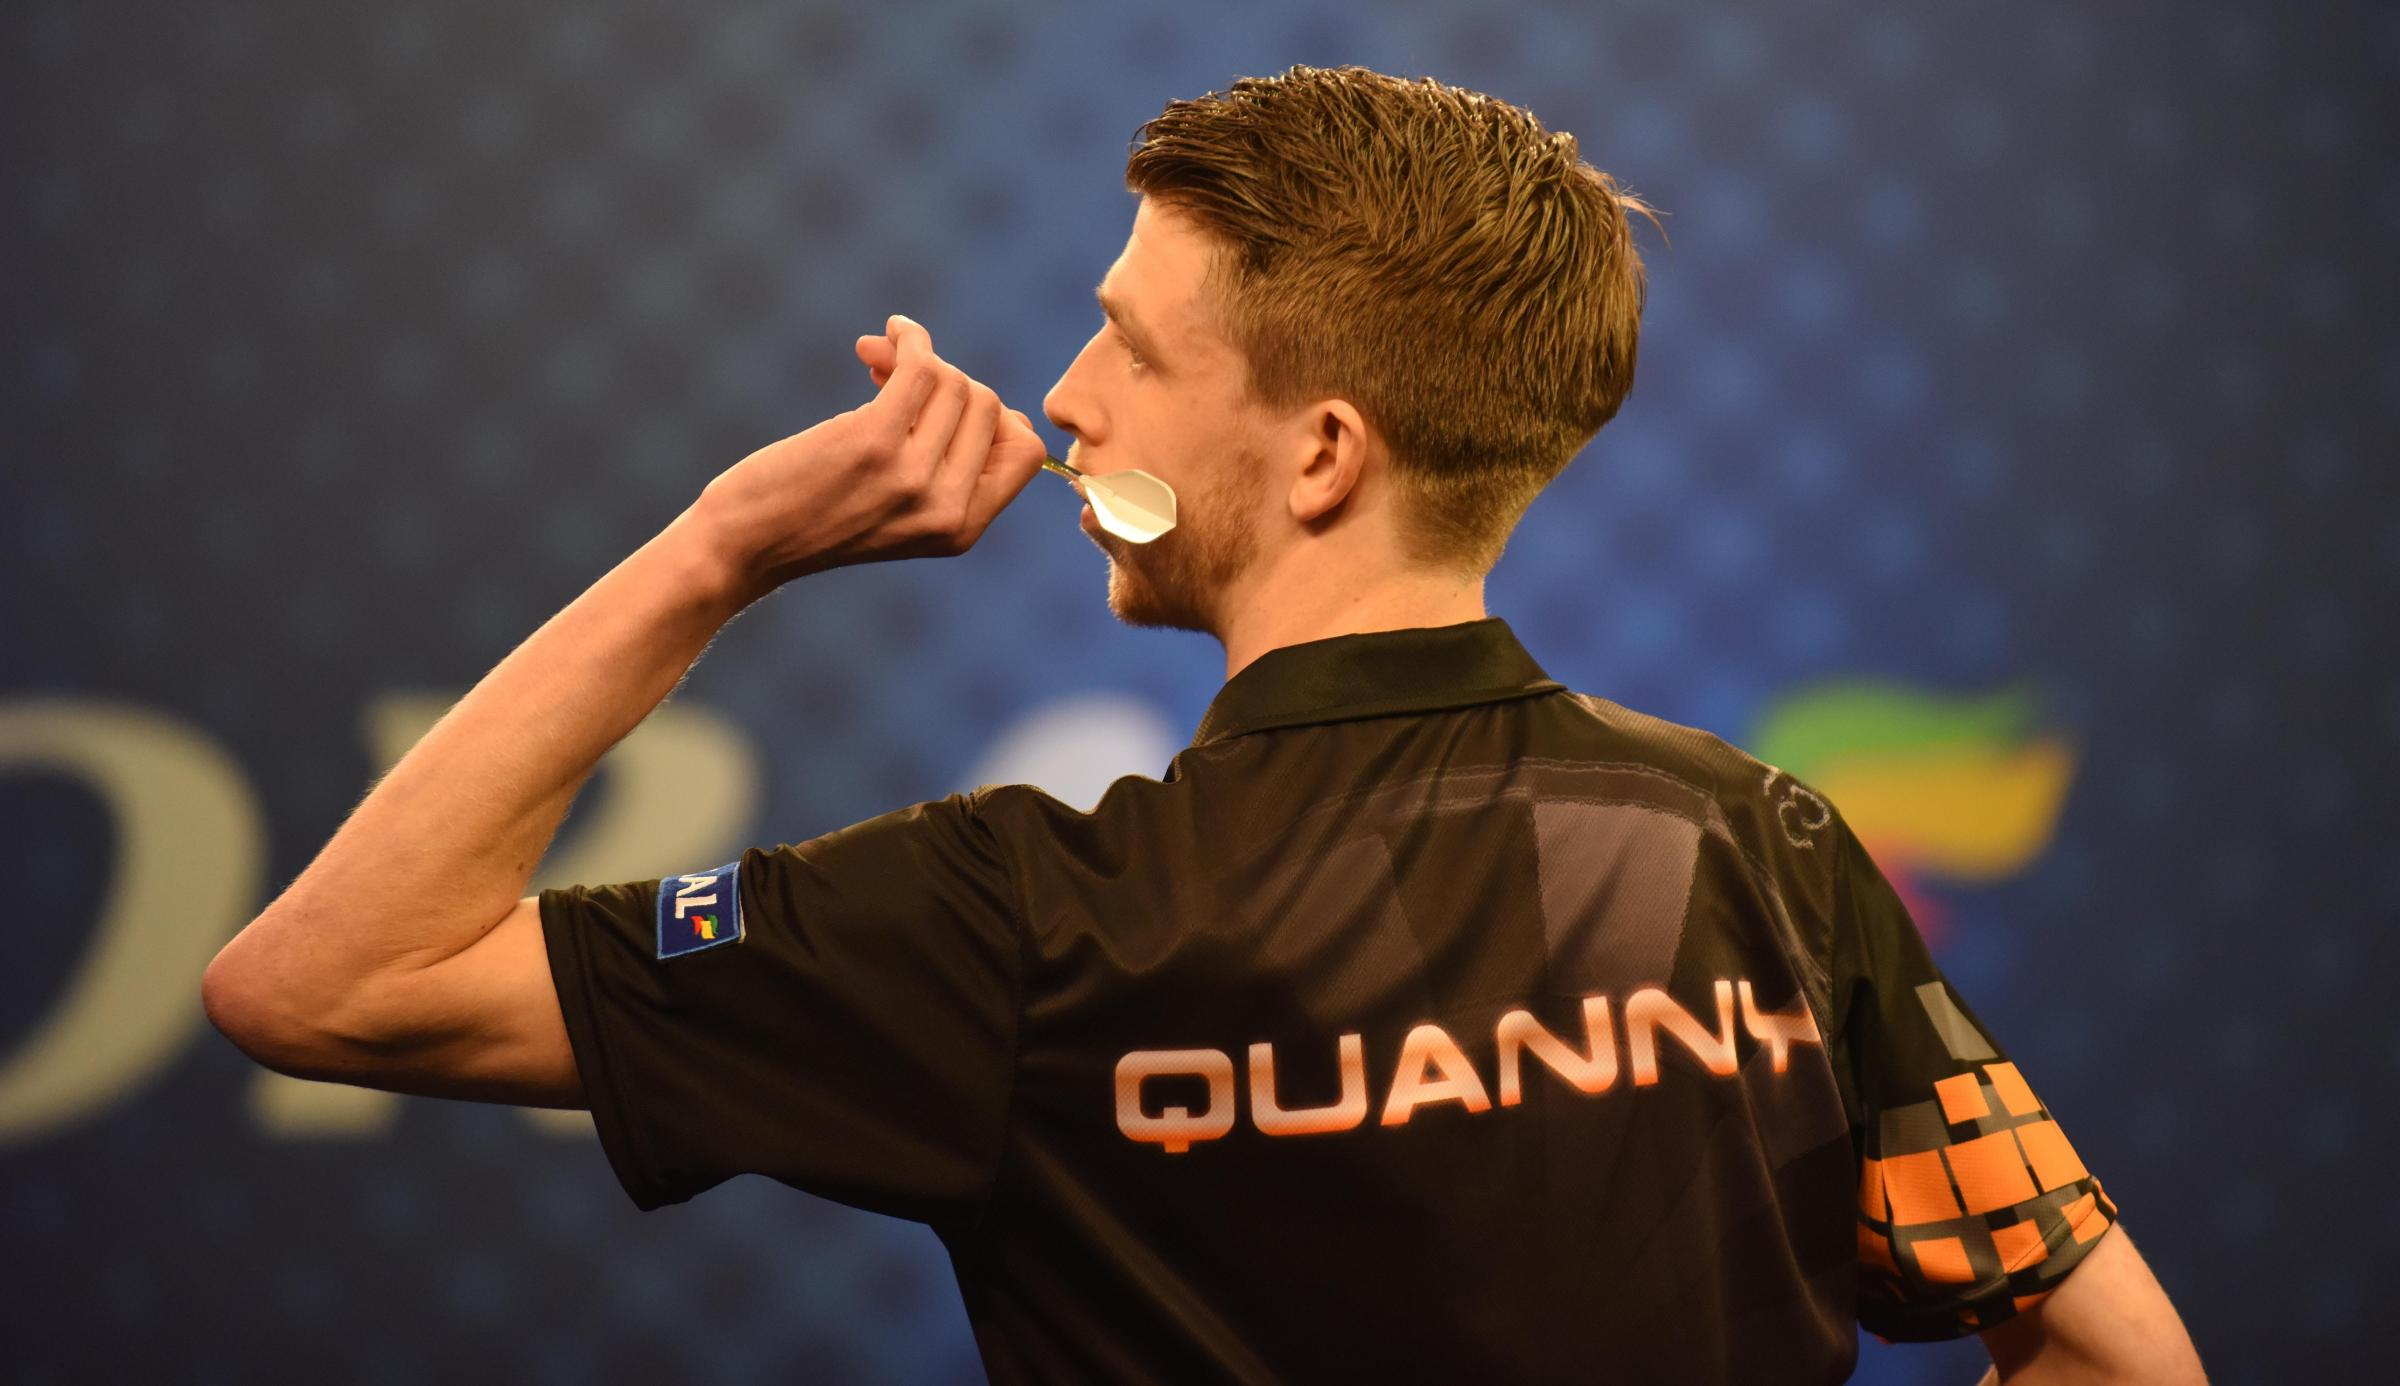 OPEN DEFEAT: Chris Quantock lose his first round Coral UK Open match against Bradley Brooks